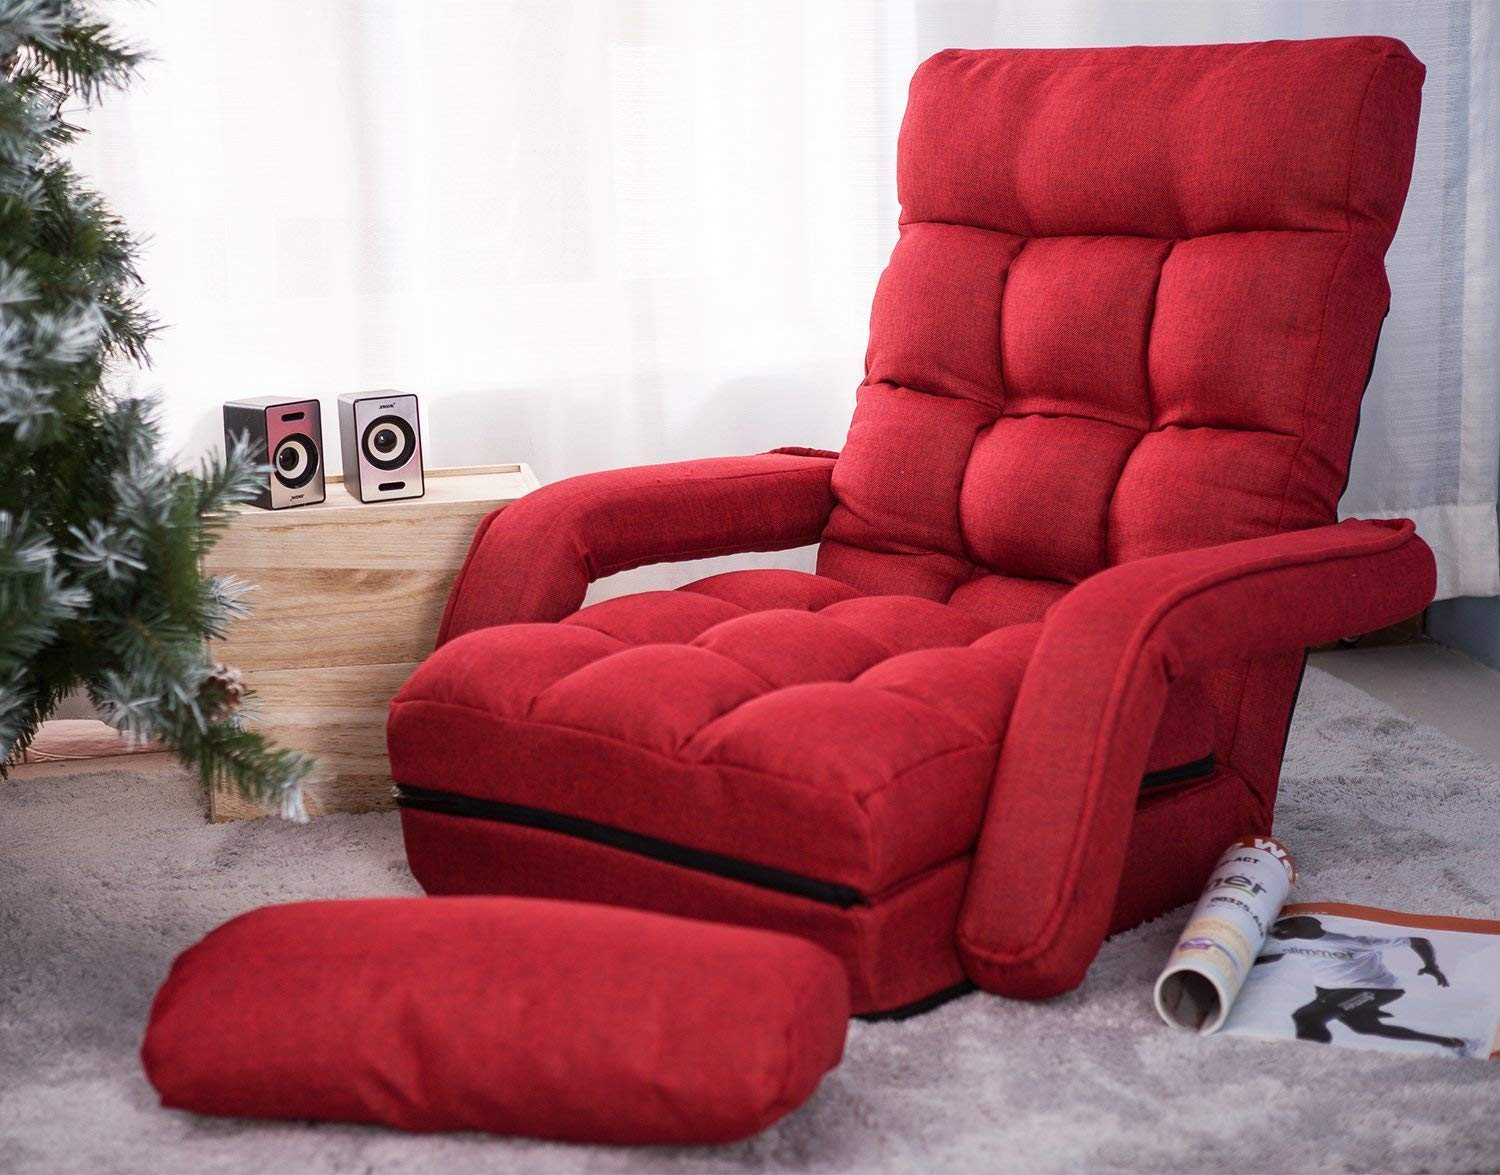 Merax Chaise Lounges Folding Lazy Floor Chair Sofa Lounger Bed with Armrests and a Pillow (Red) by Merax